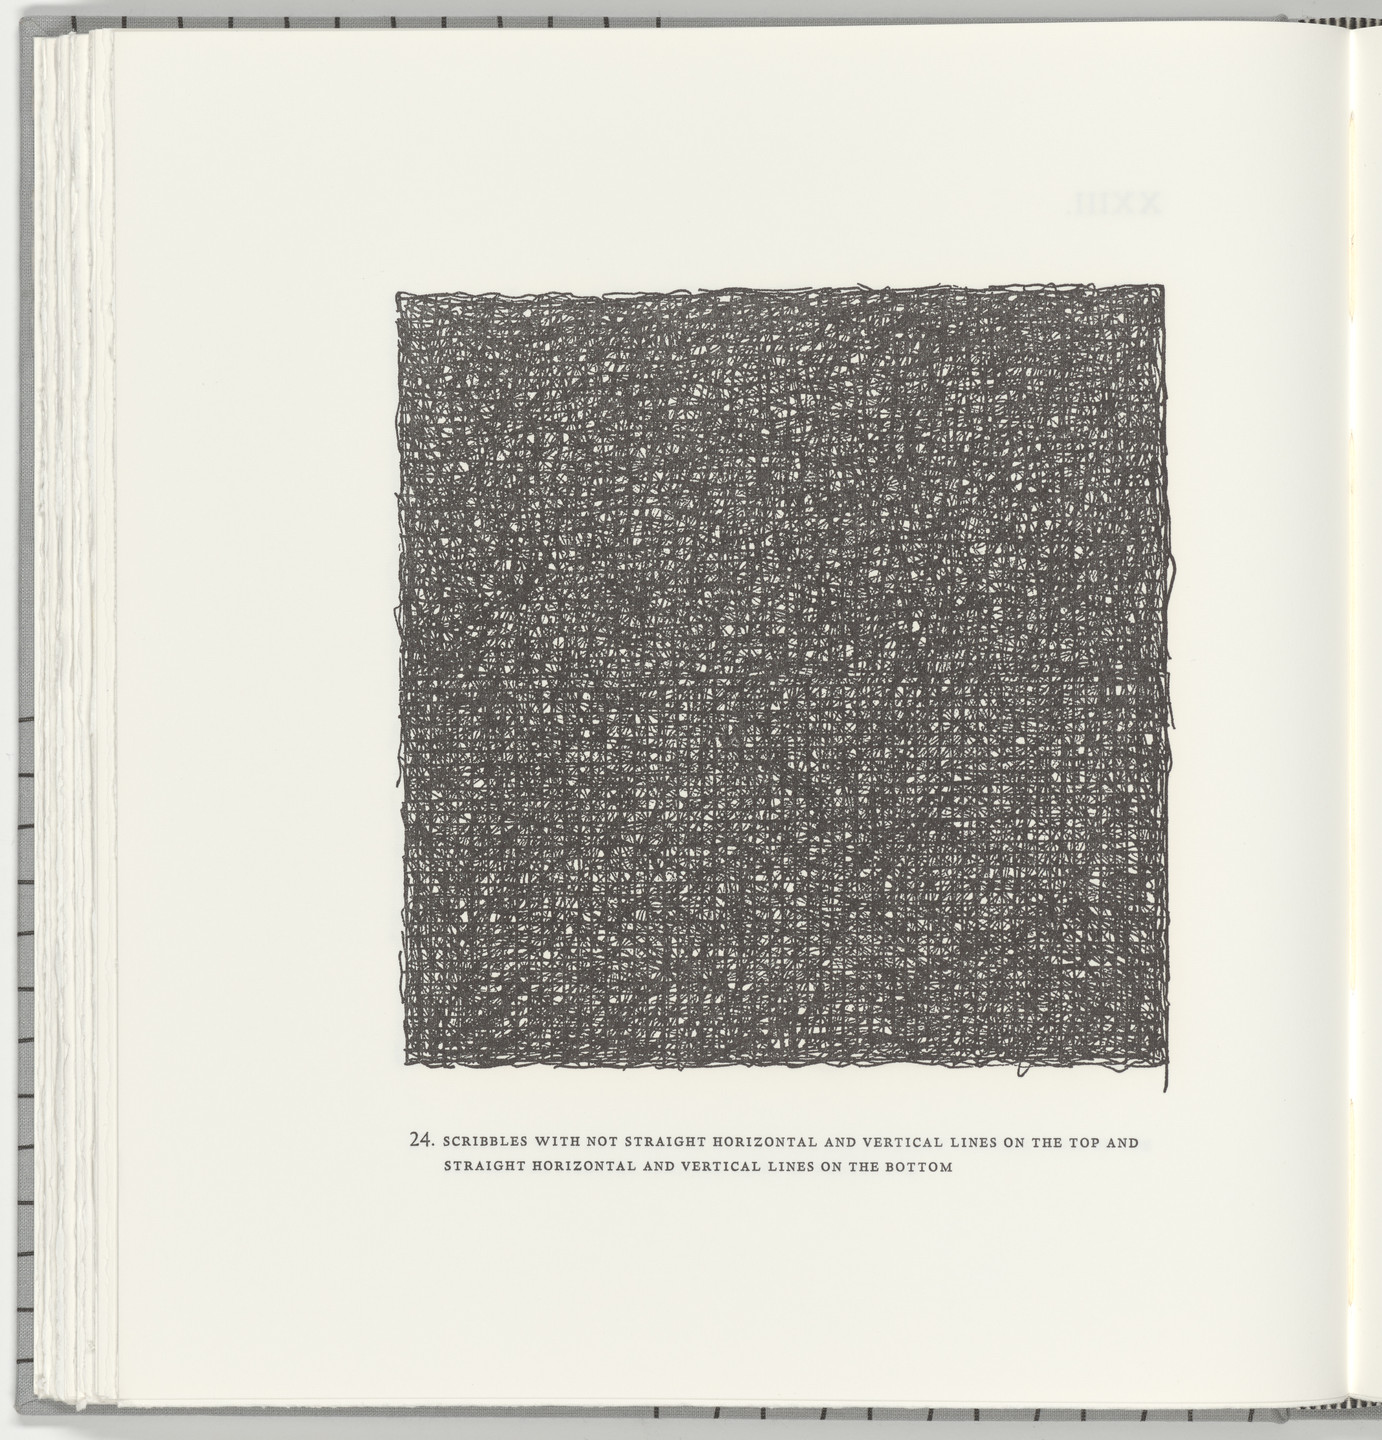 Sol LeWitt. Scribbles with Not Straight Horizontal and Vertical Lines on the Top and Straight Horizontal and Vertical Lines on the Bottom (plate 24) from Squarings. 2003